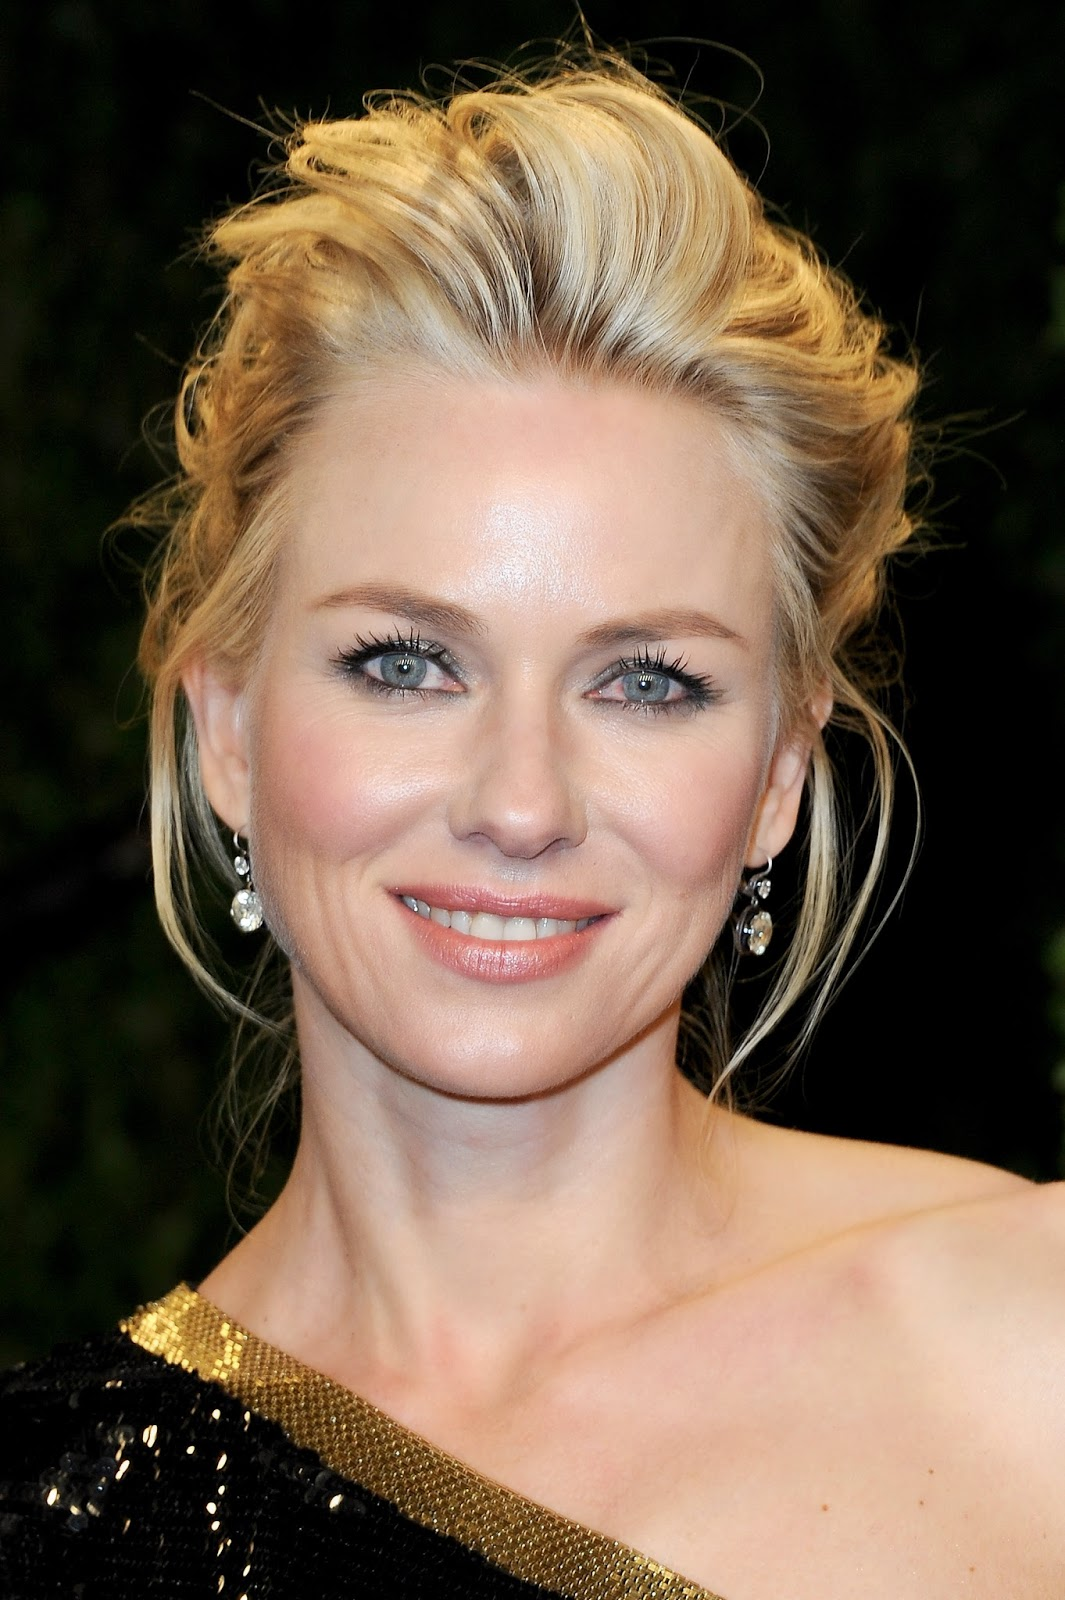 Naomi Watts Biography| Profile| Pictures| News